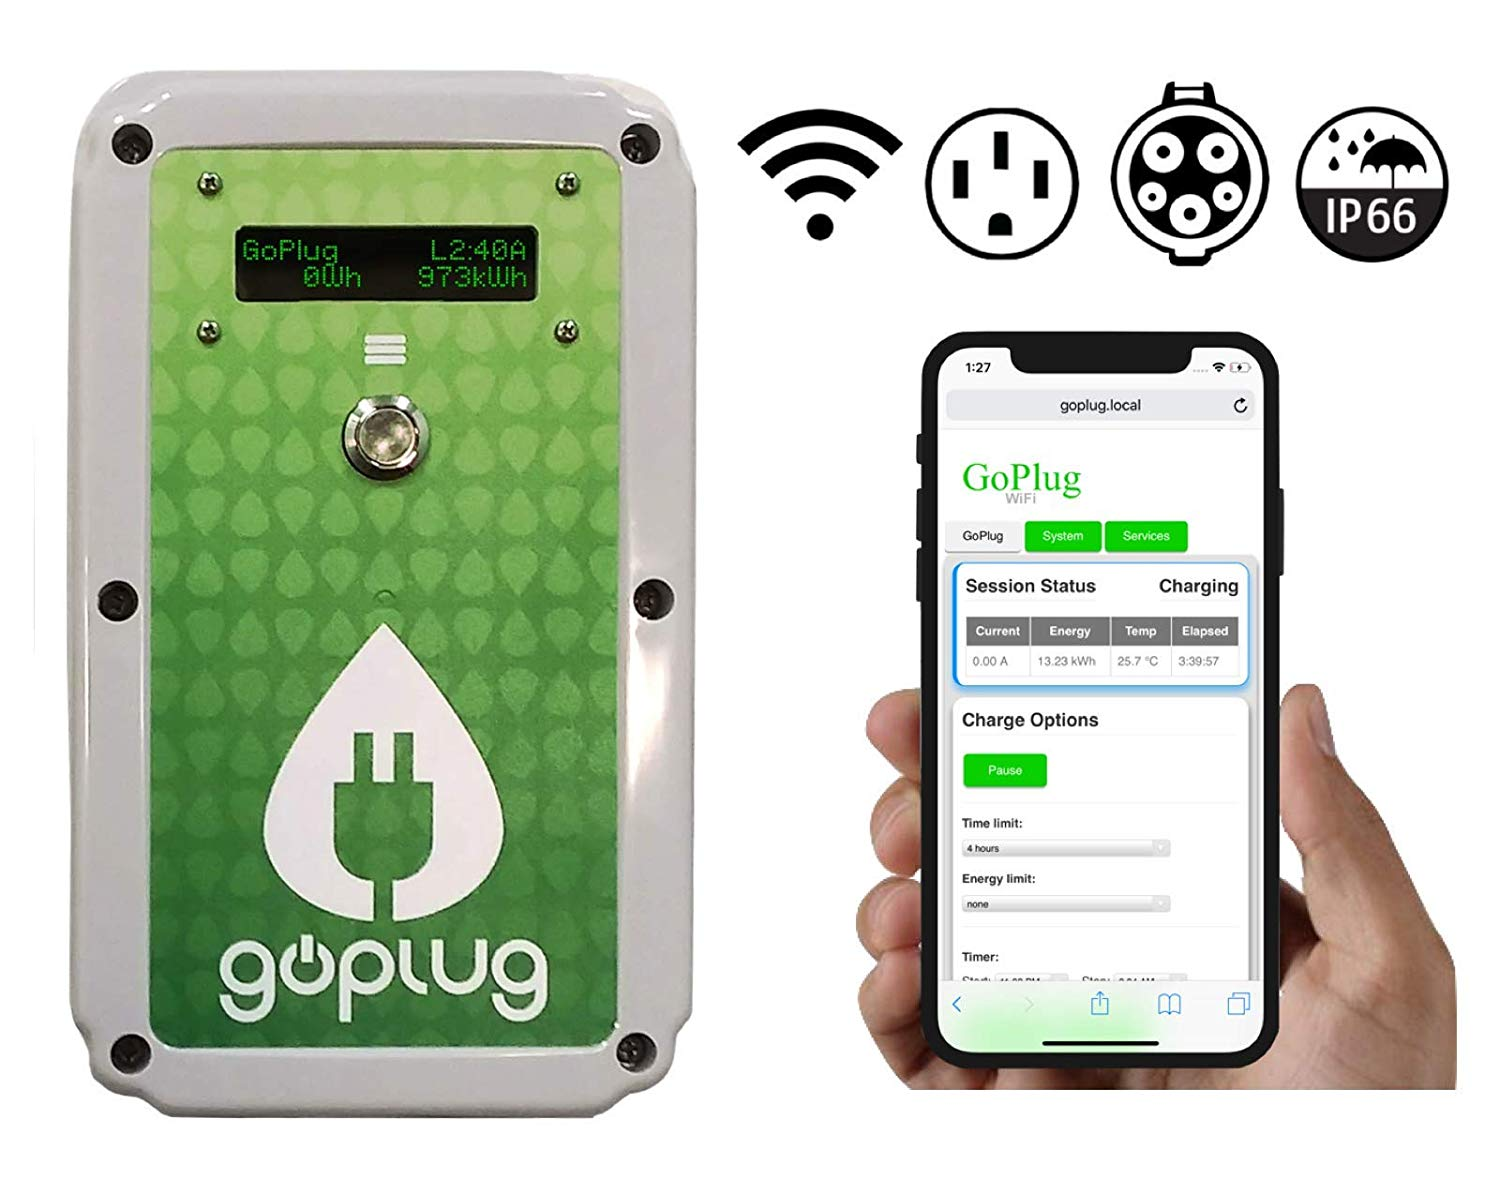 goplug amazon